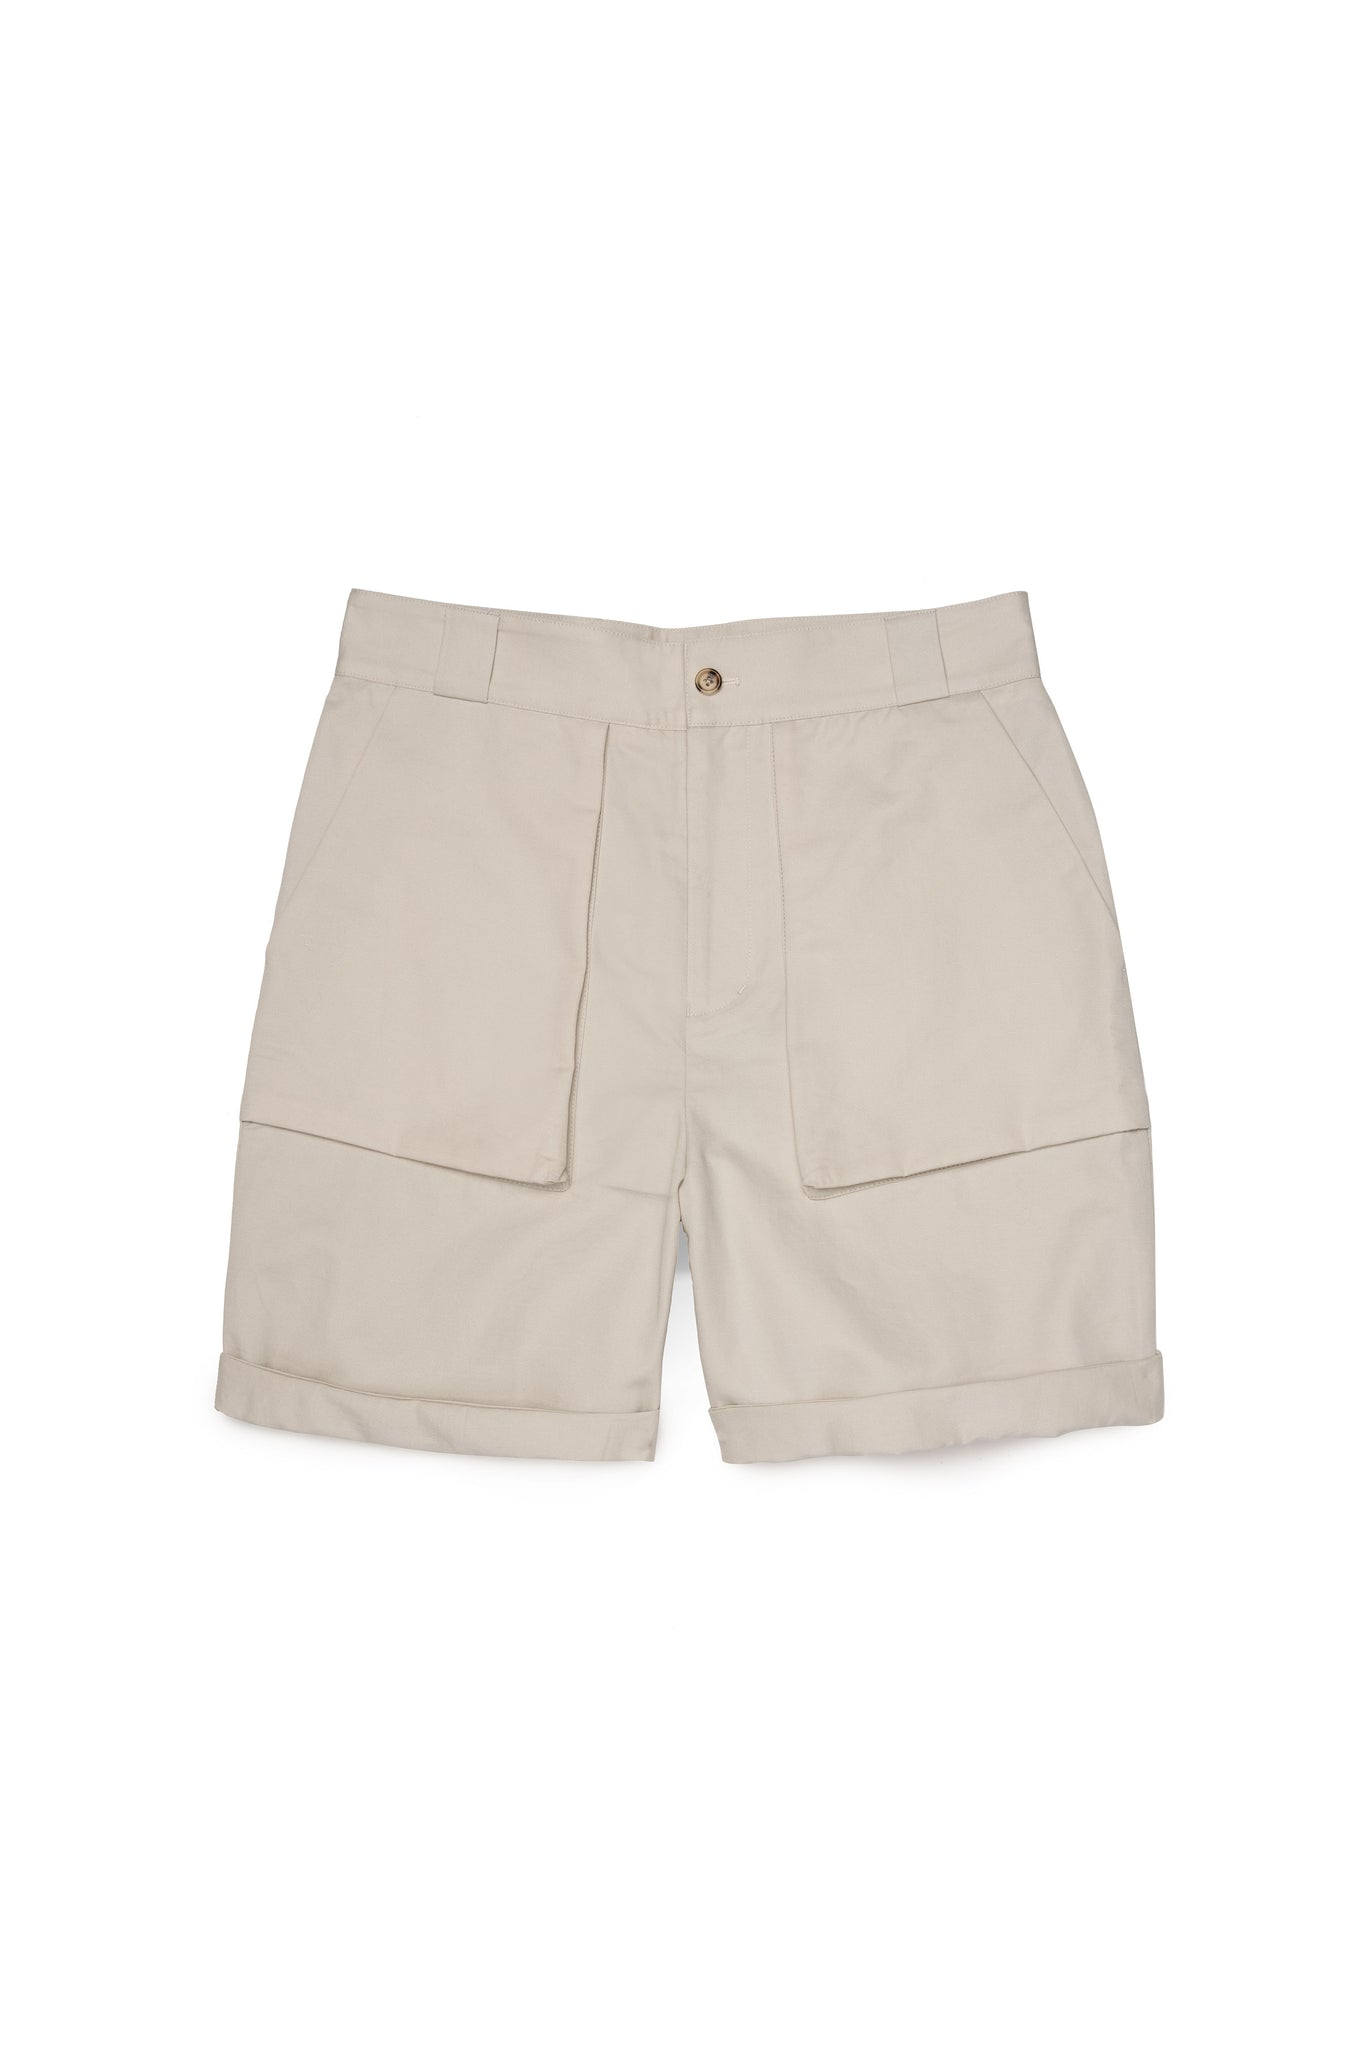 Beige Cotton Linen Walking Shorts